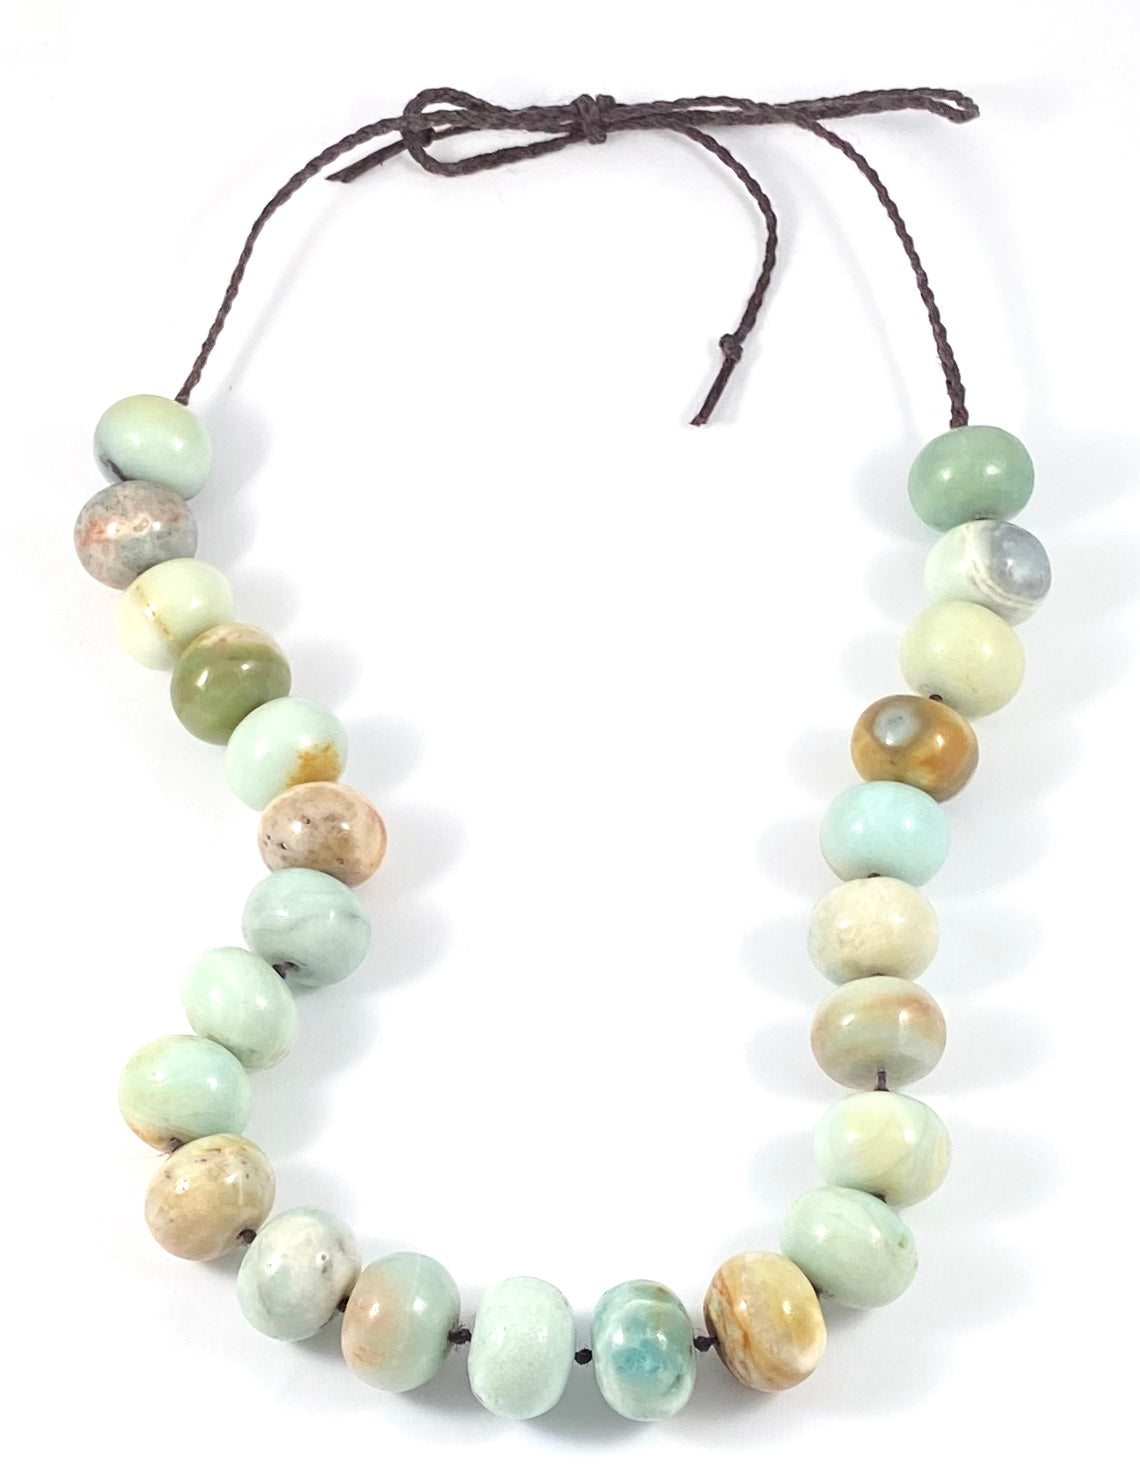 Big Bead Rondelle Semi-Precious Stone Necklace